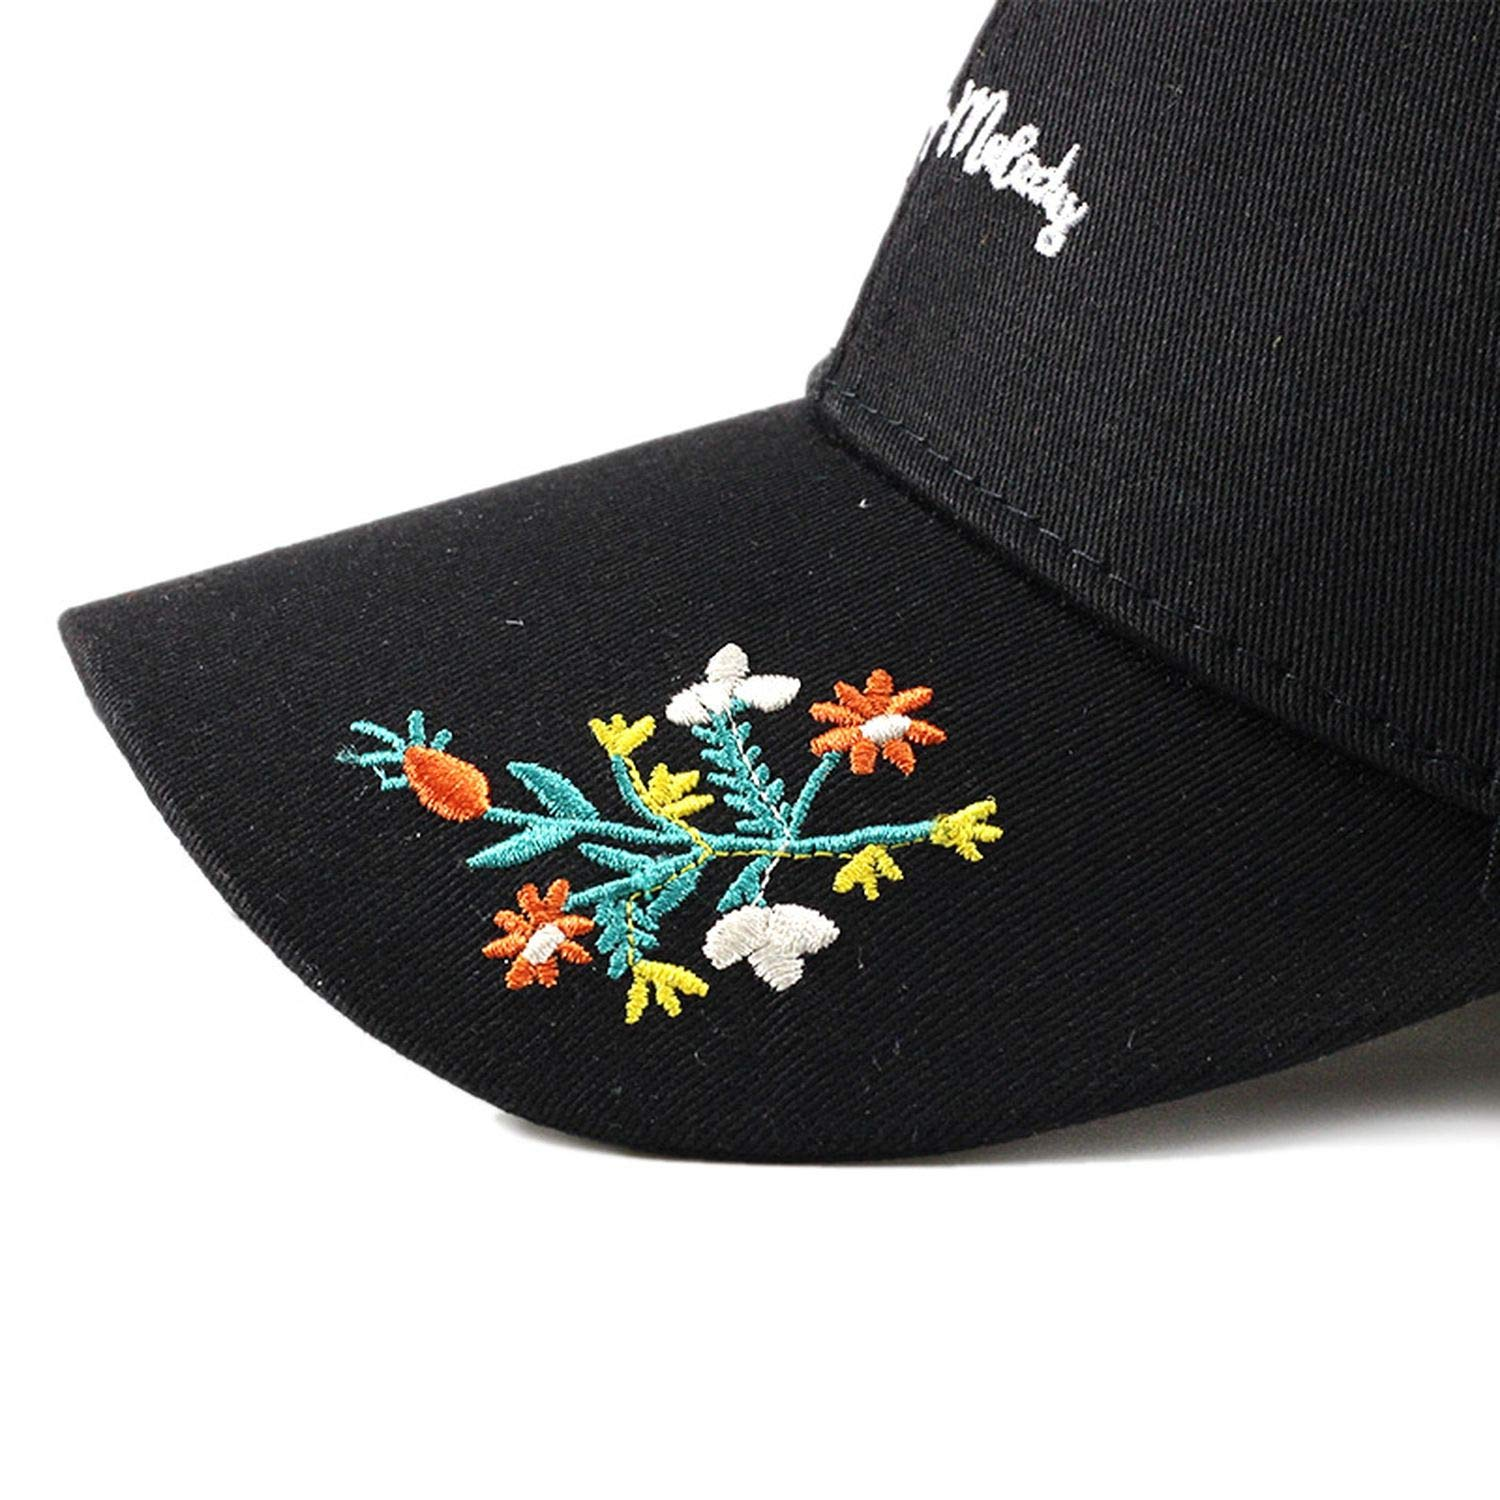 Lady Embroidered Baseball Caps Temperament Wildflower Visor Hip Hop Cap Flower Fashion Casual Beautiful Hat